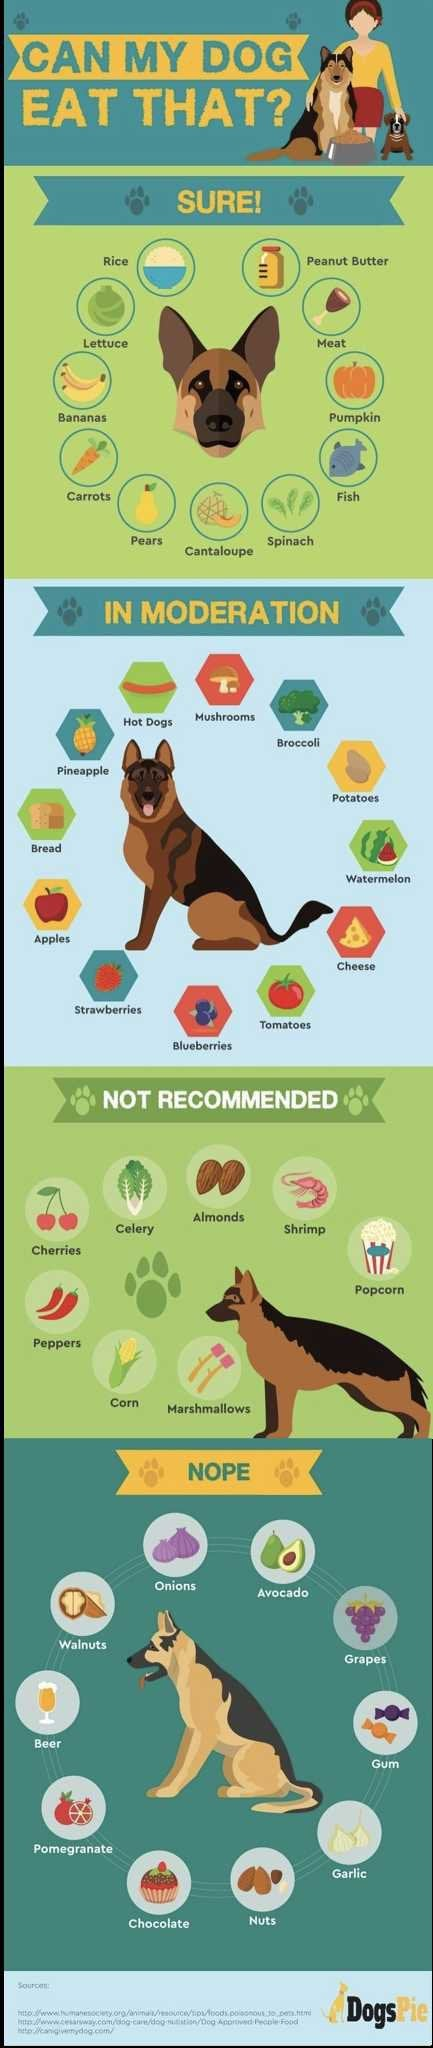 Foods dogs should/shouldn't have